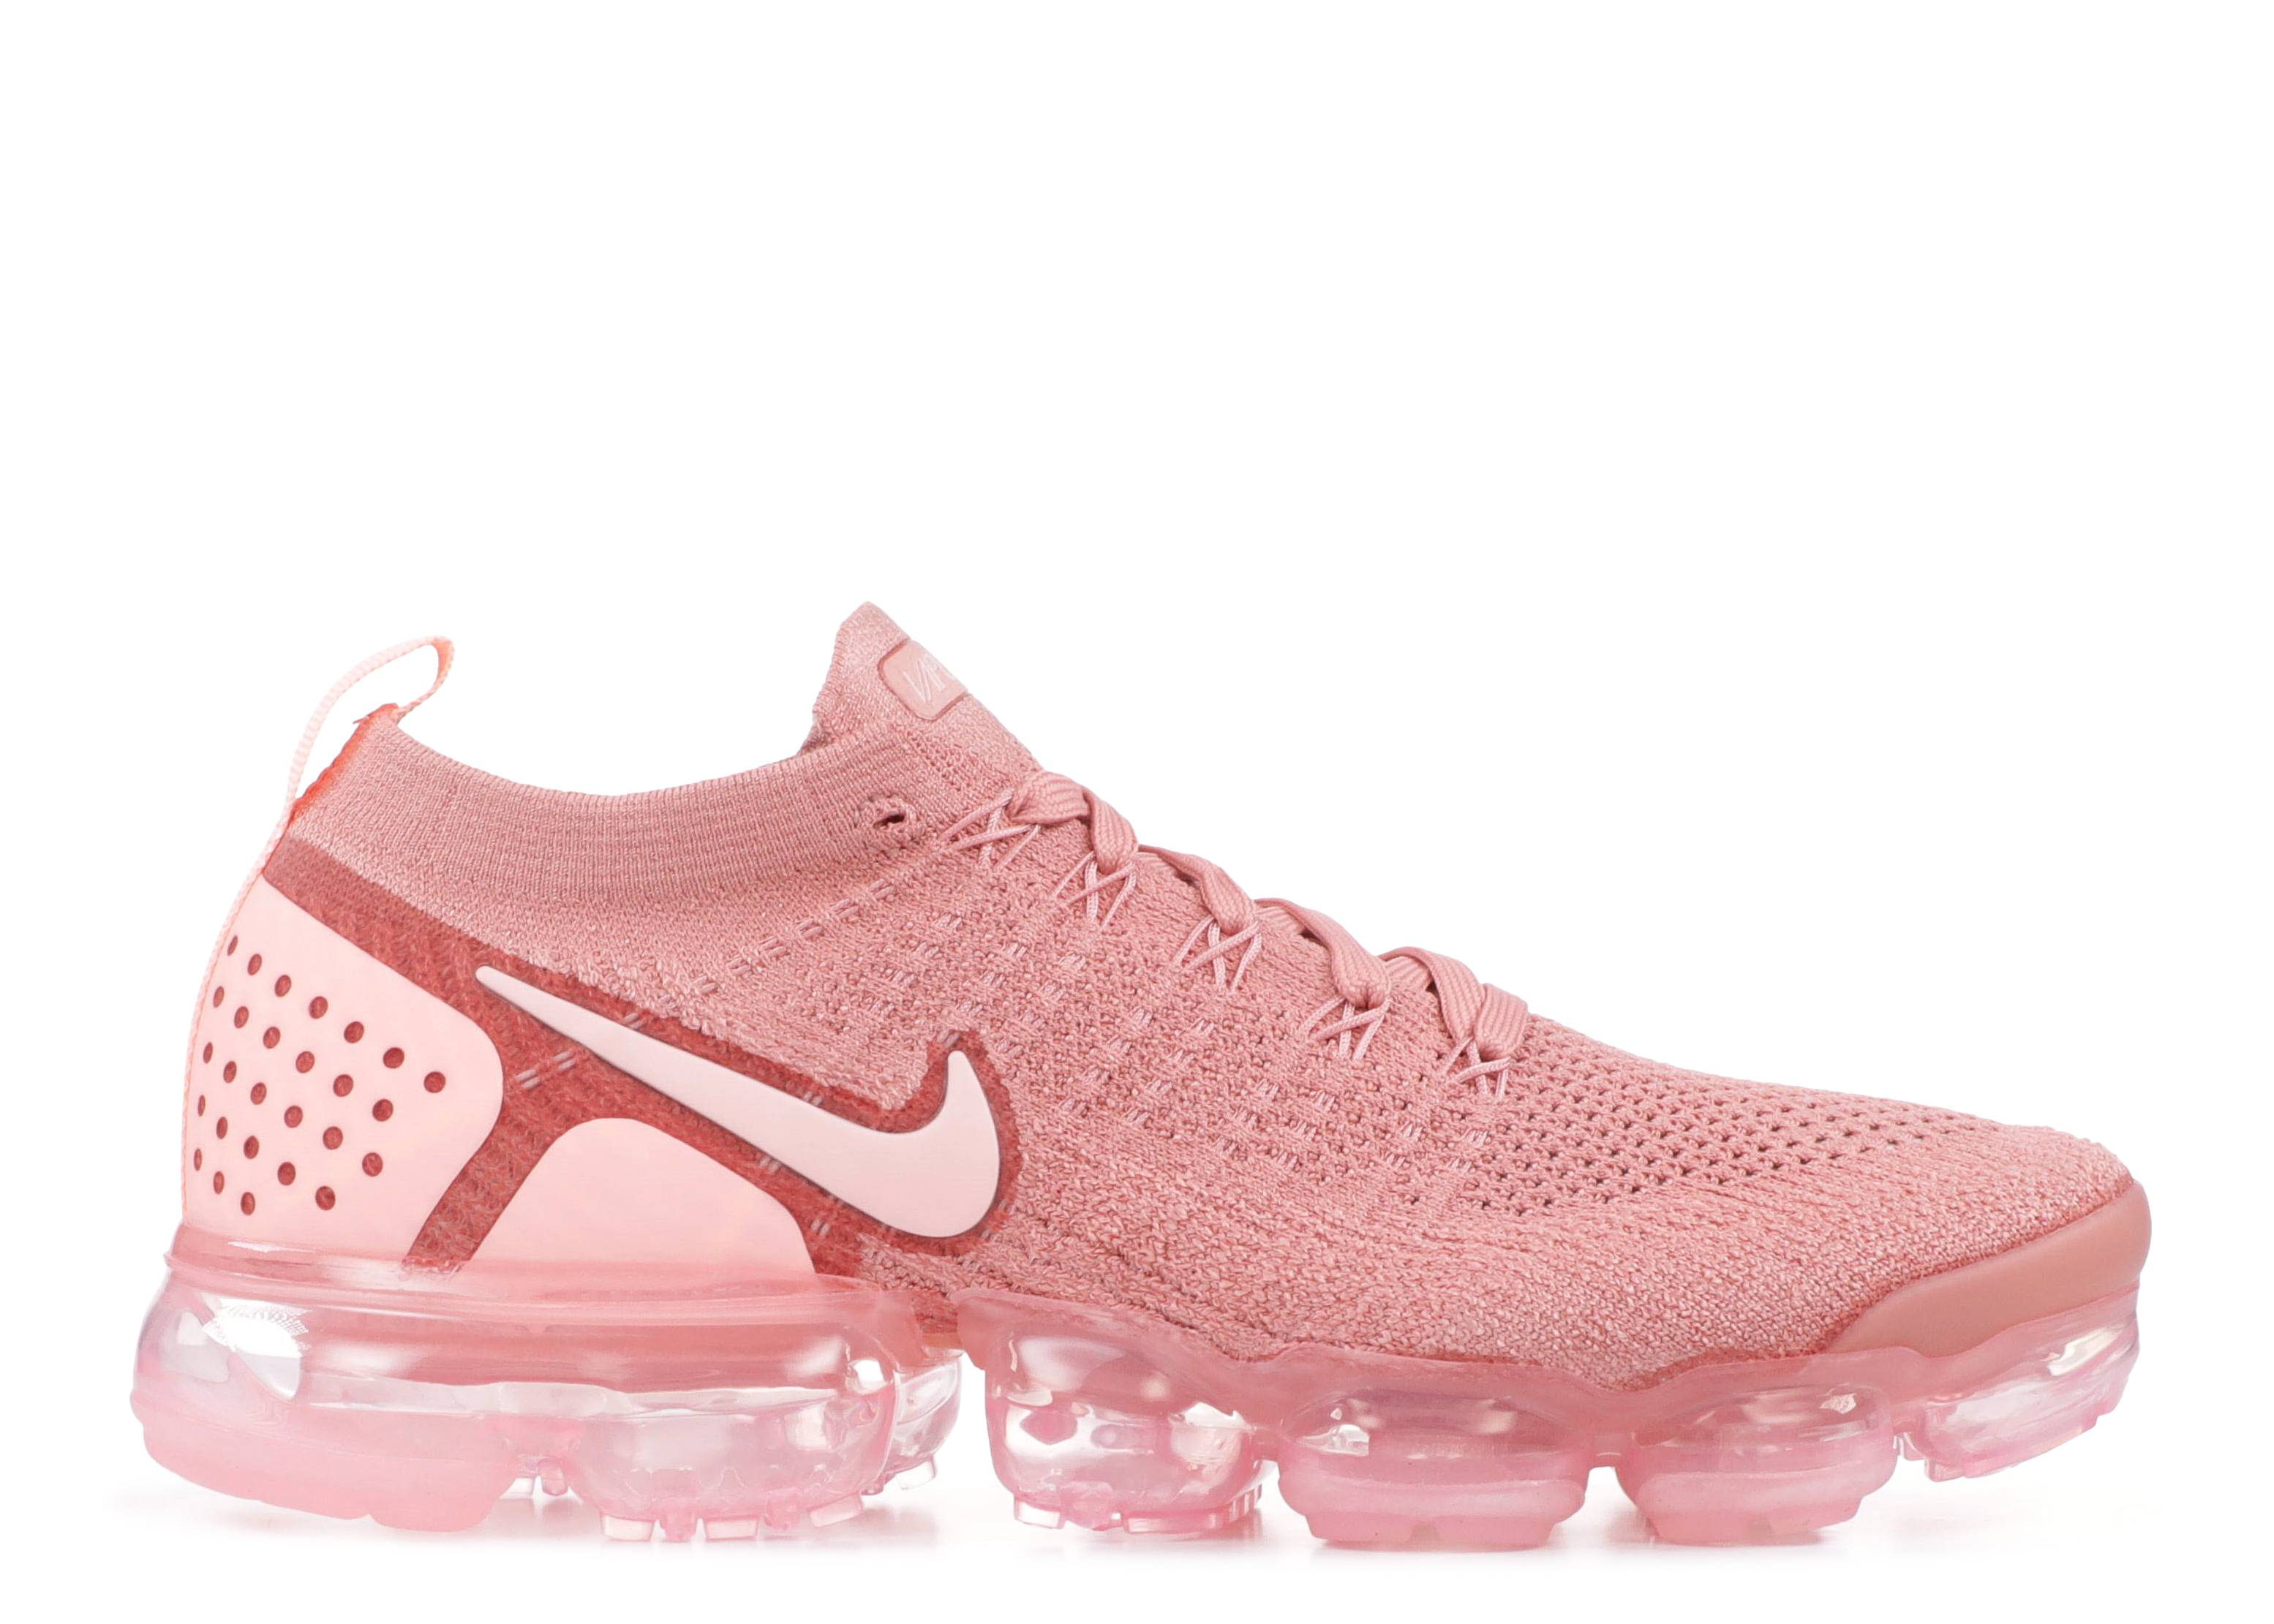 reputable site 8c321 5ec56 w nike air vapormax flyknit 2